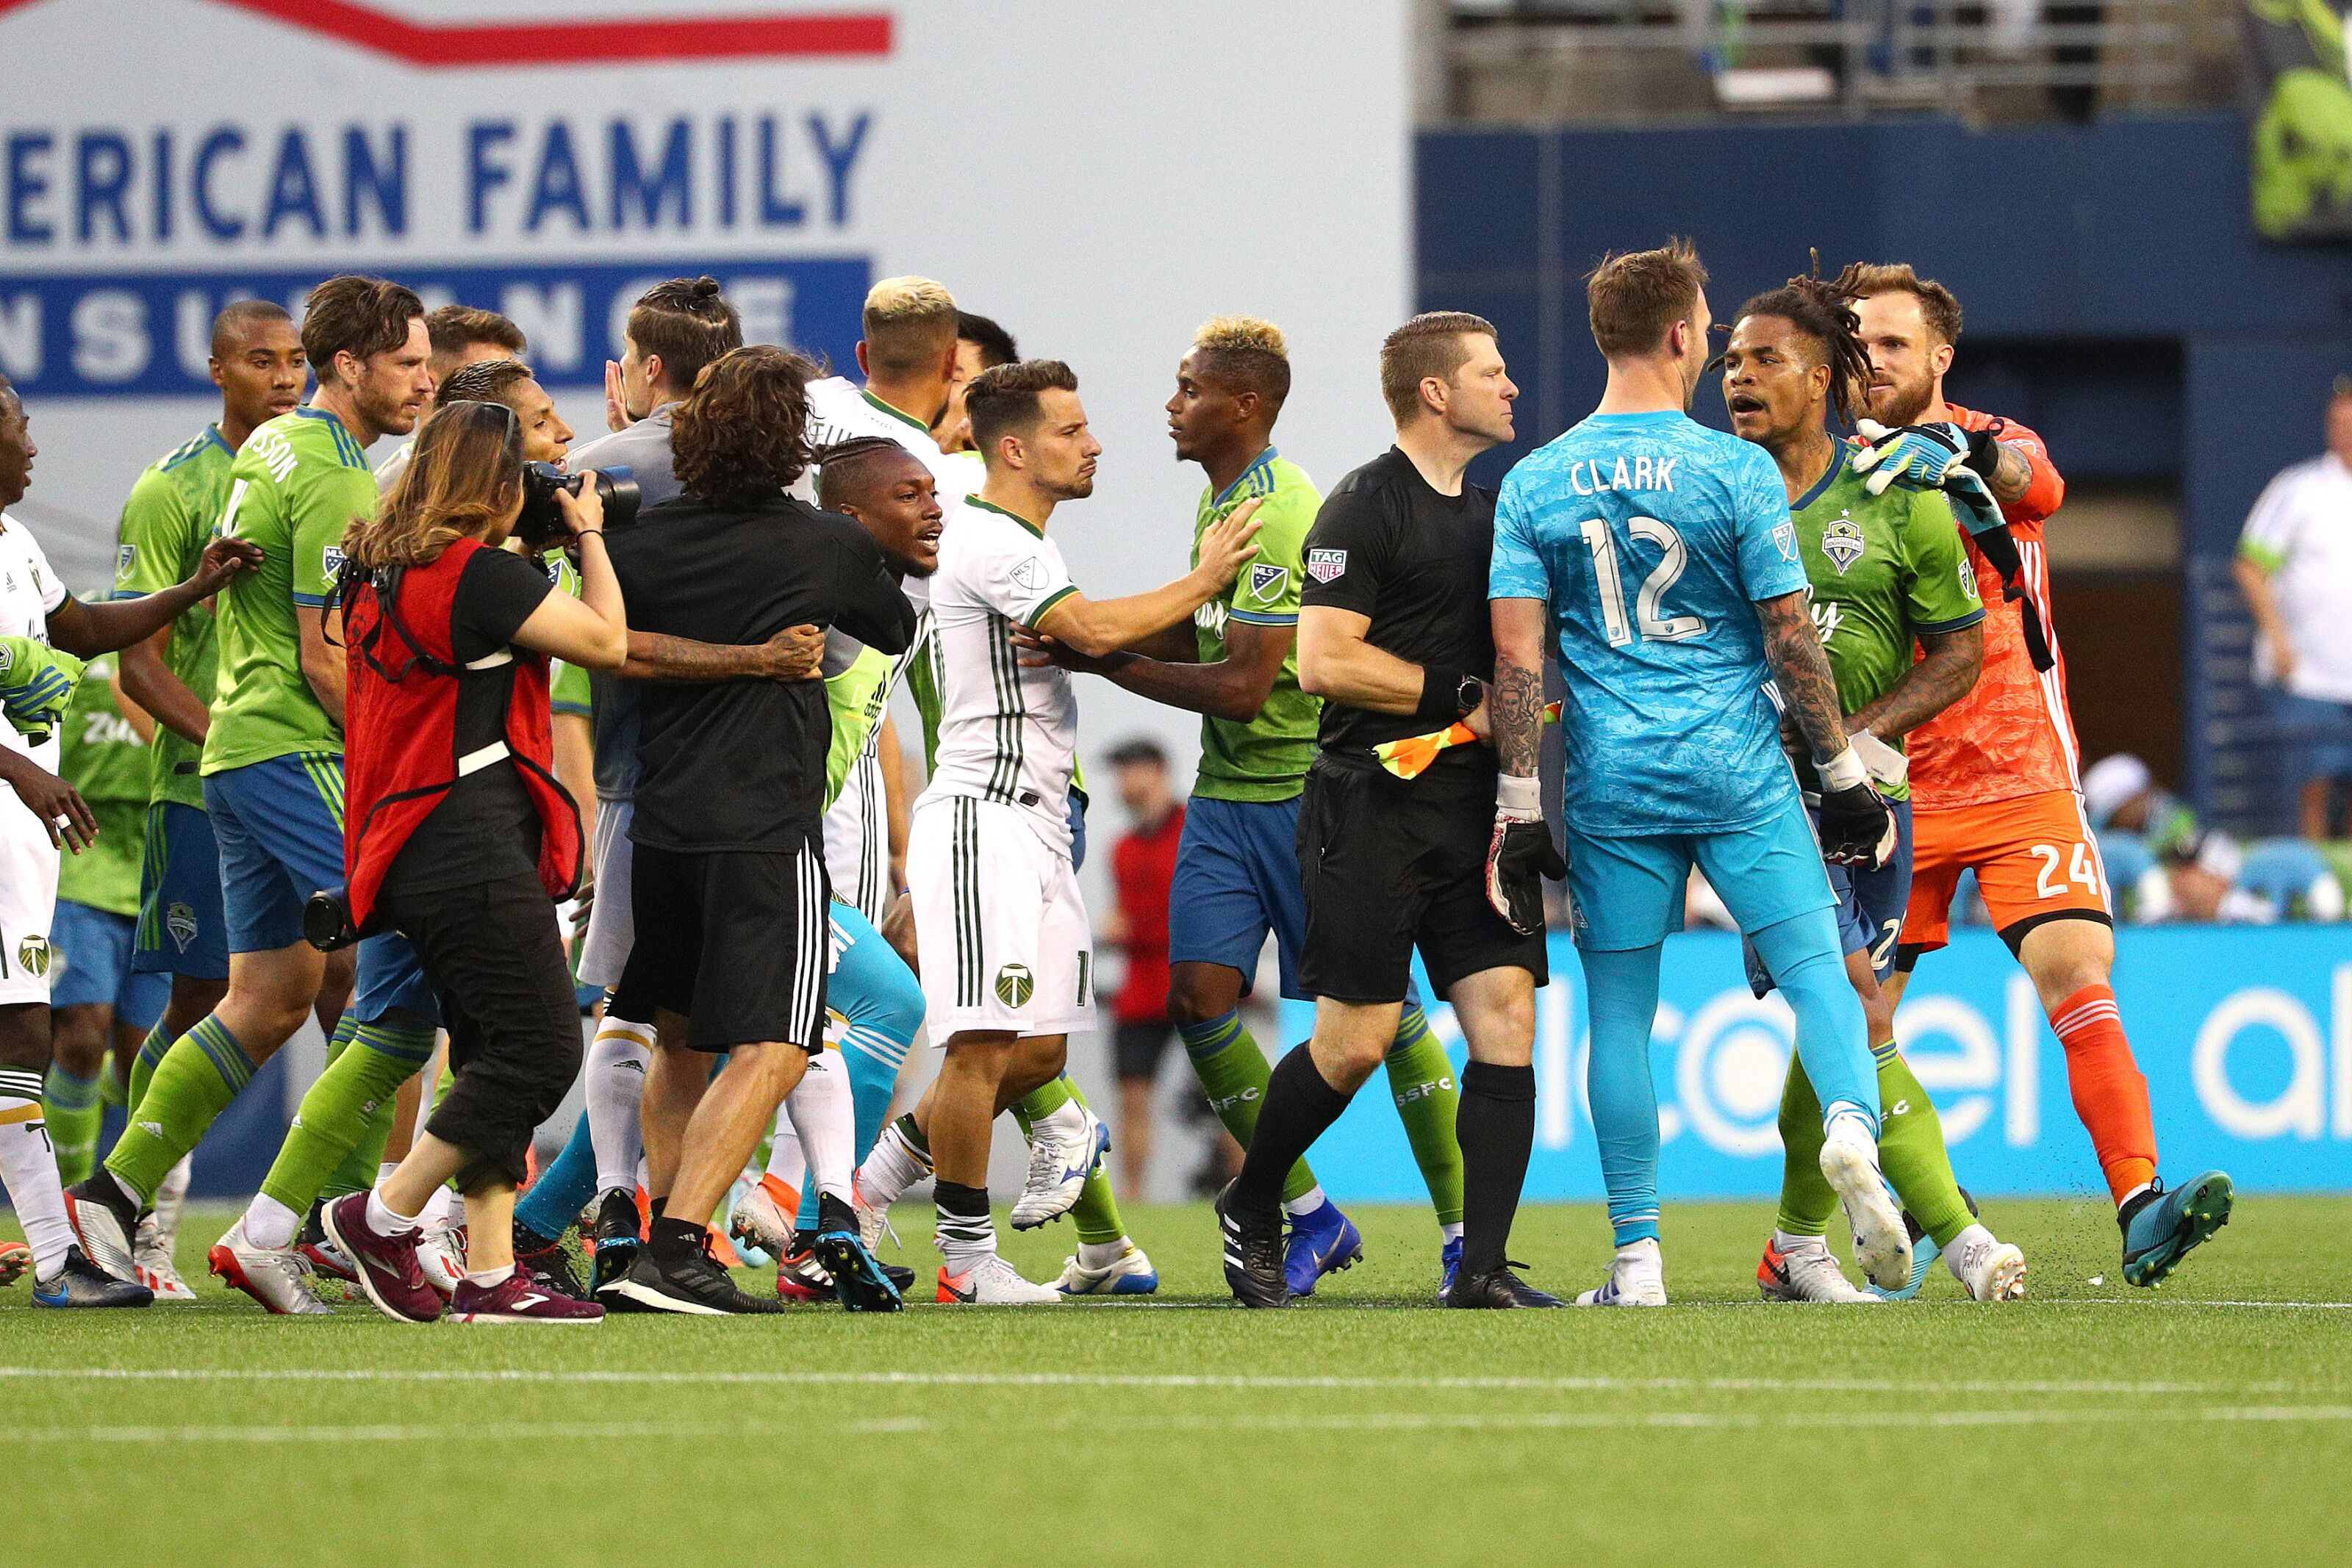 MLS: Budding rivalries intensify league atmosphere